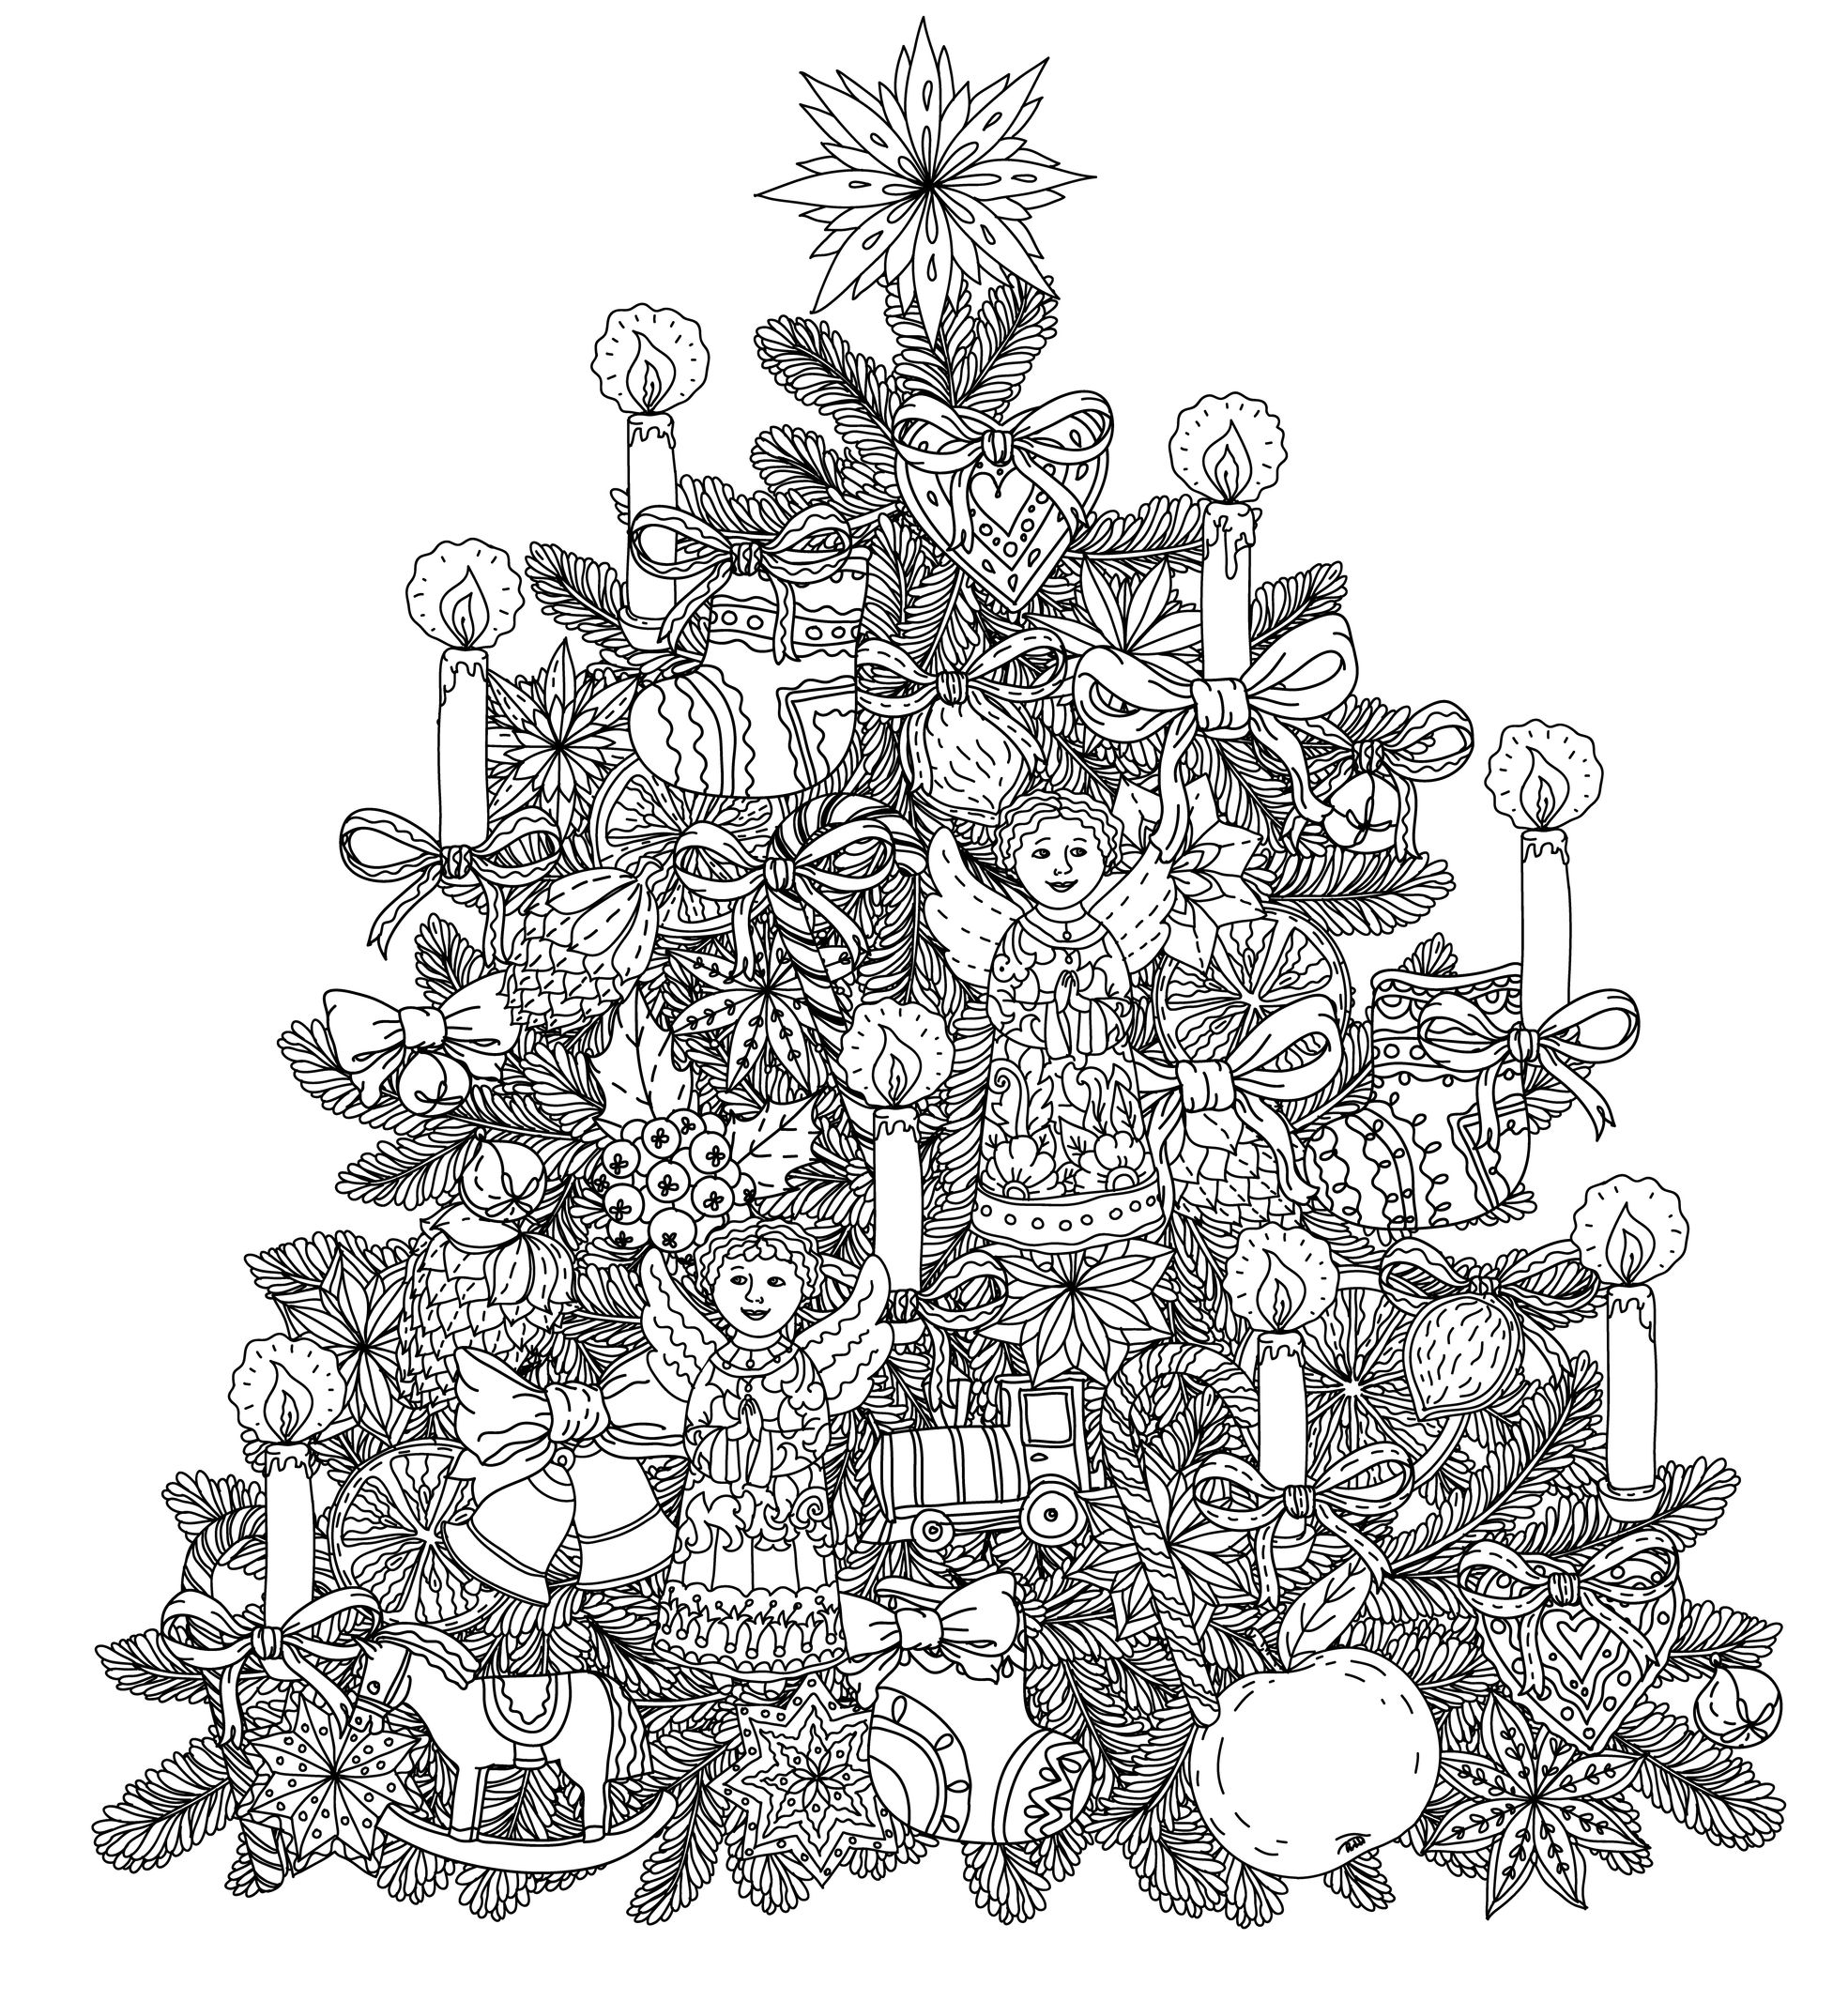 Christmas tree ornament with decorative items, black and white.